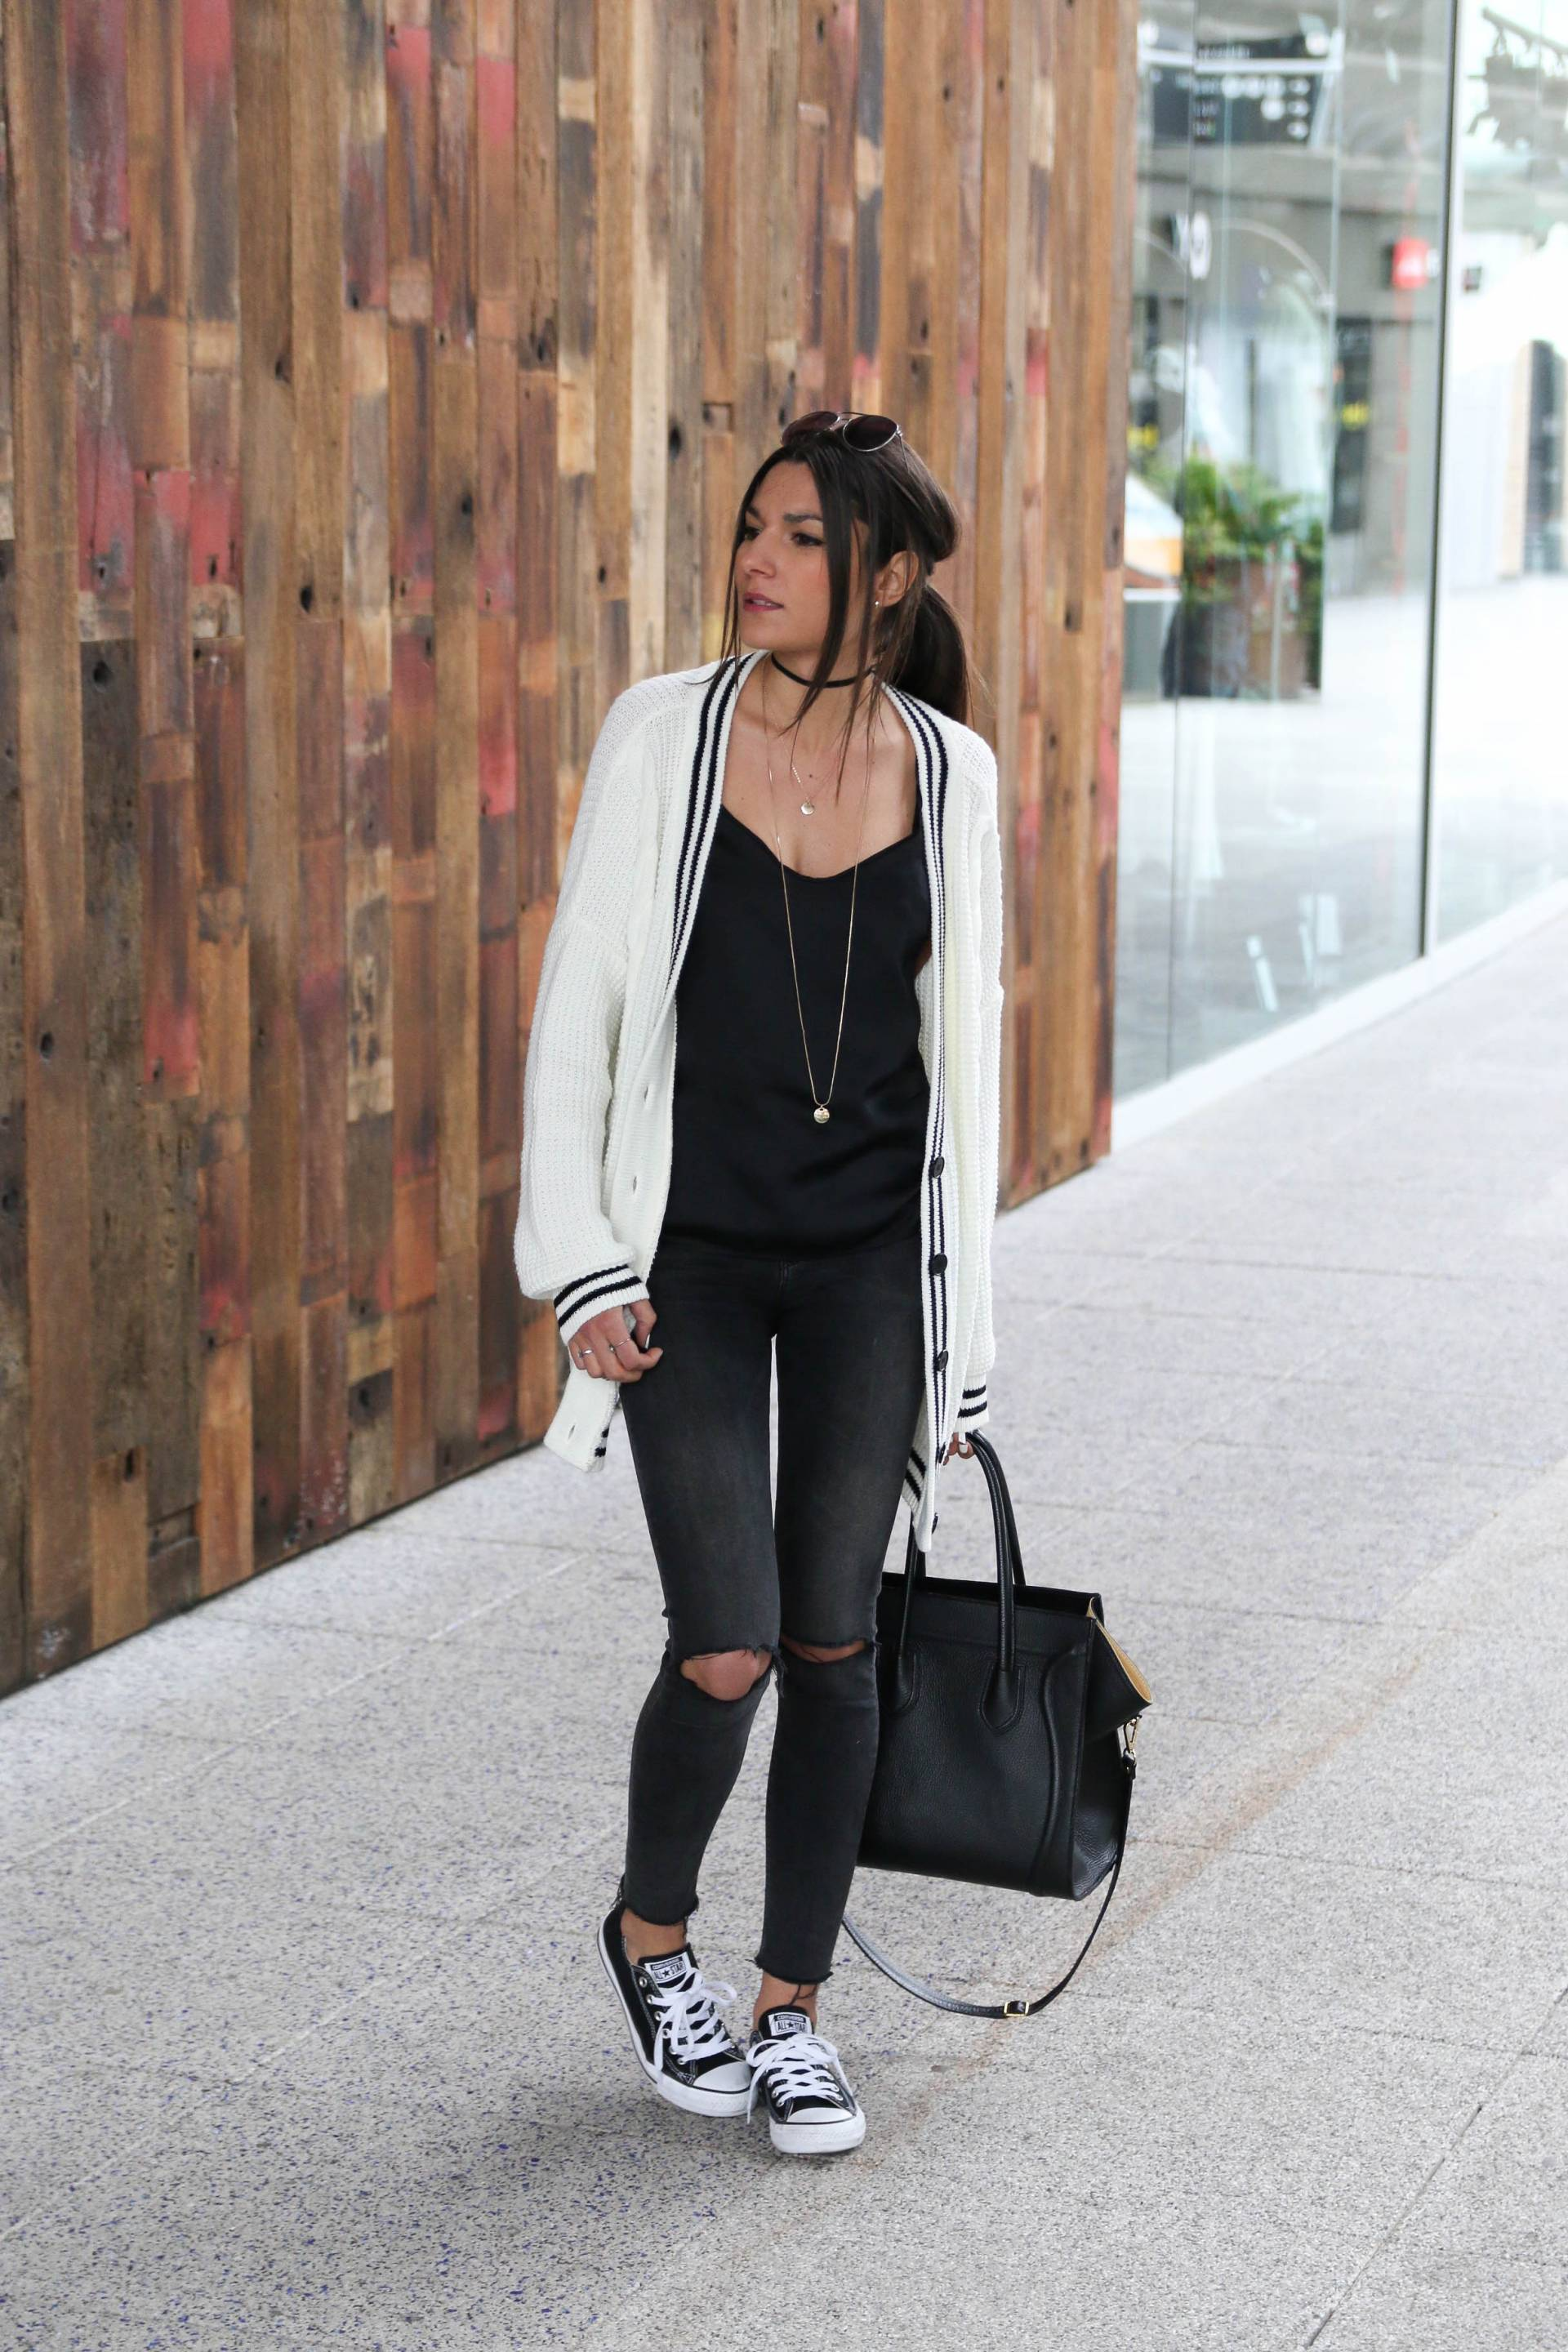 Wear converse with a cable knit cardigan and a pair of ripped black jeans to steal Federica L.'s cute and casual style. This look is affordable and achievable; what's not to love? Cardigan: Asos, Top: Zara, Jeans: Bershka, Shoes: Converse.